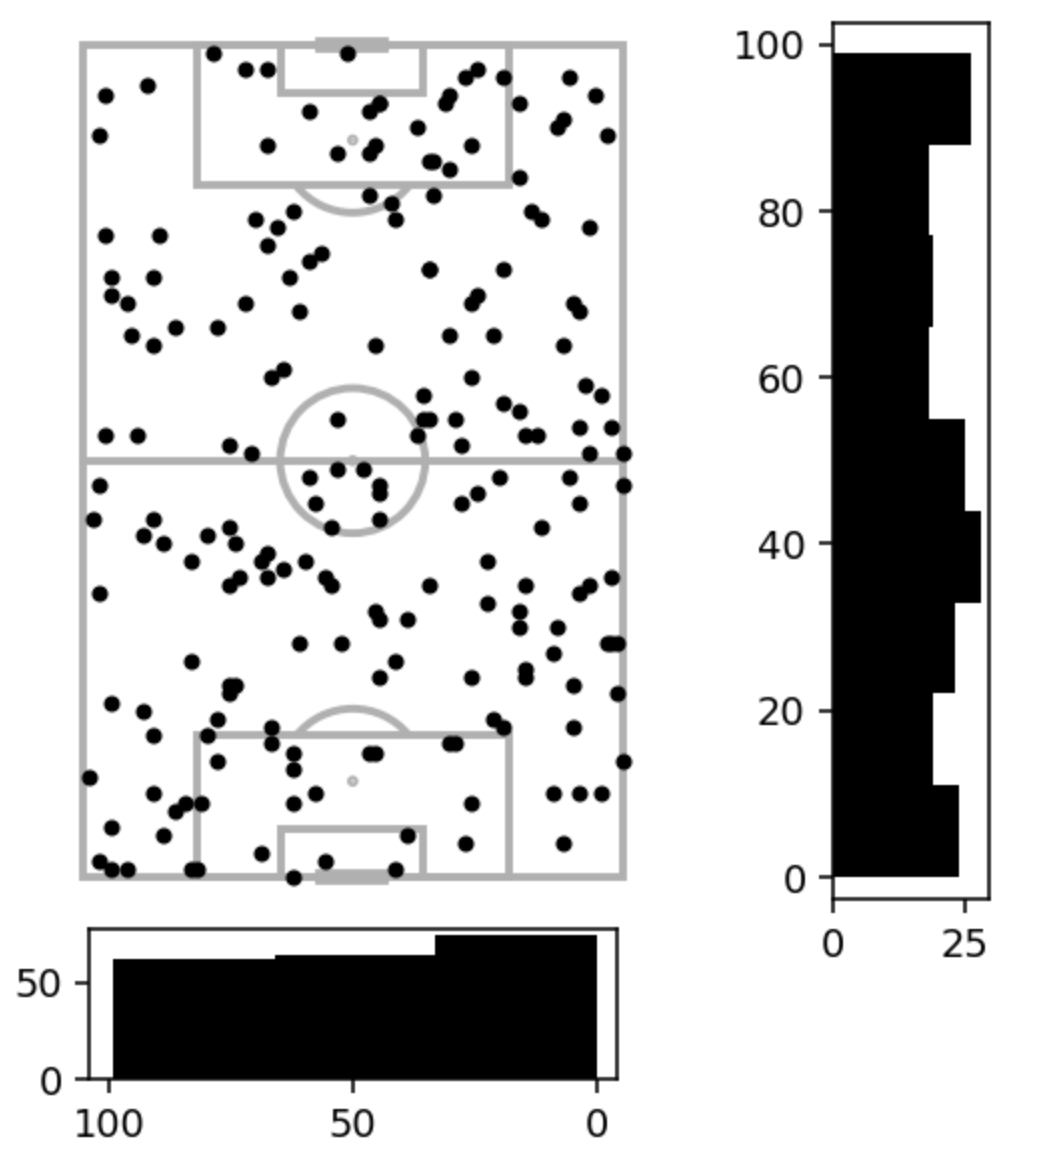 Scatter plot on football pitch, histograms to summarise distributions